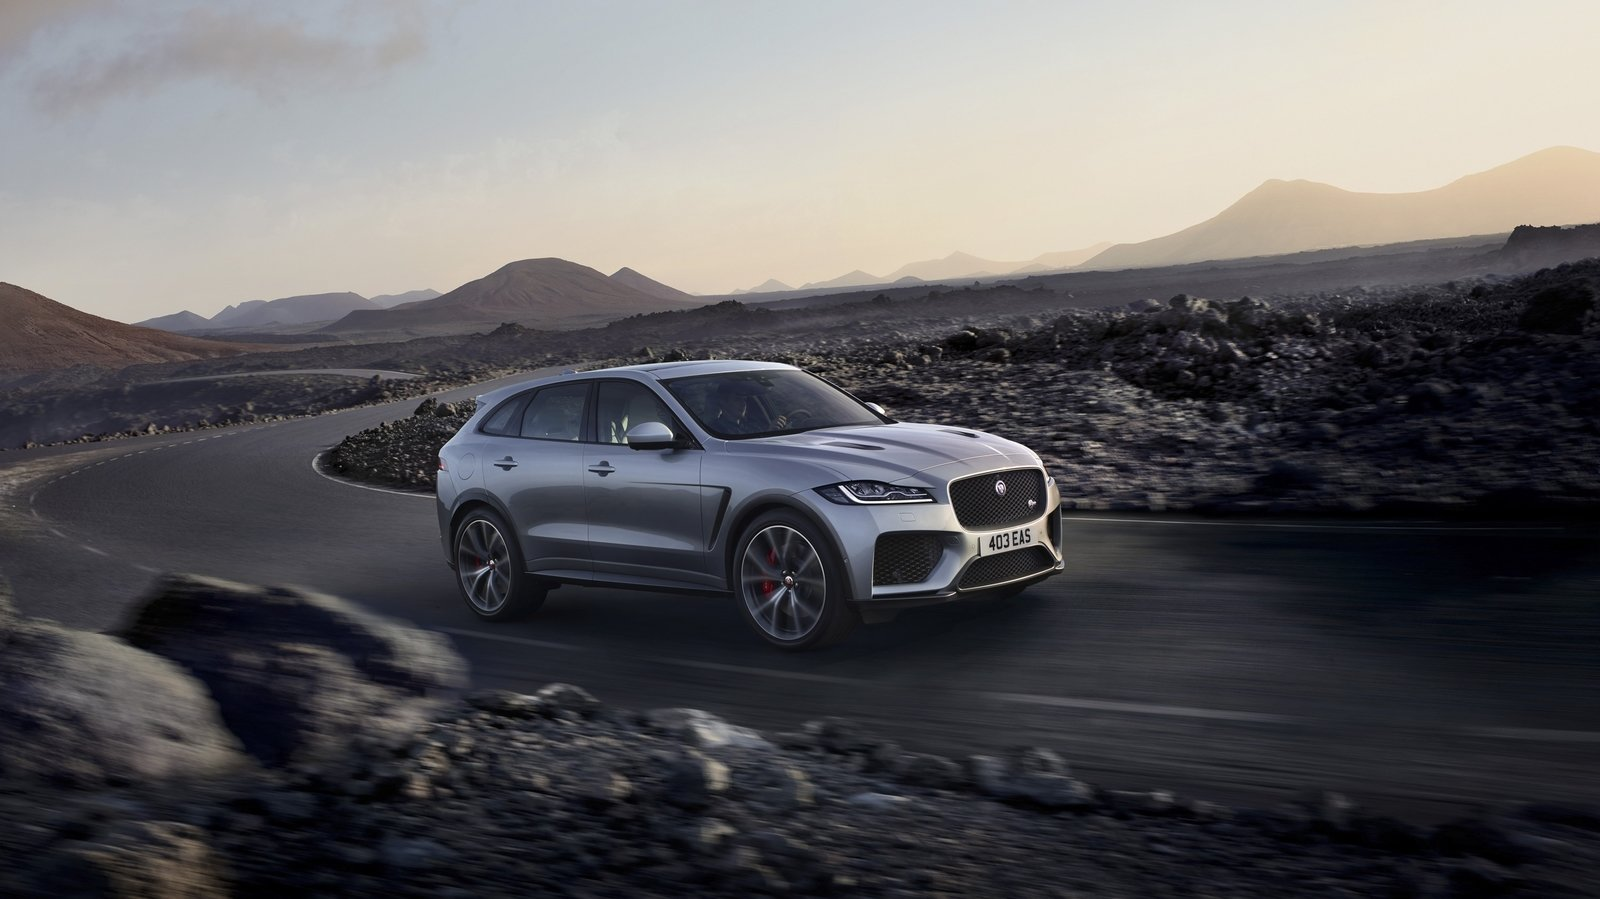 The Jaguar F-Pace SVR Just Rendered The Upcoming BMW X3 M ...